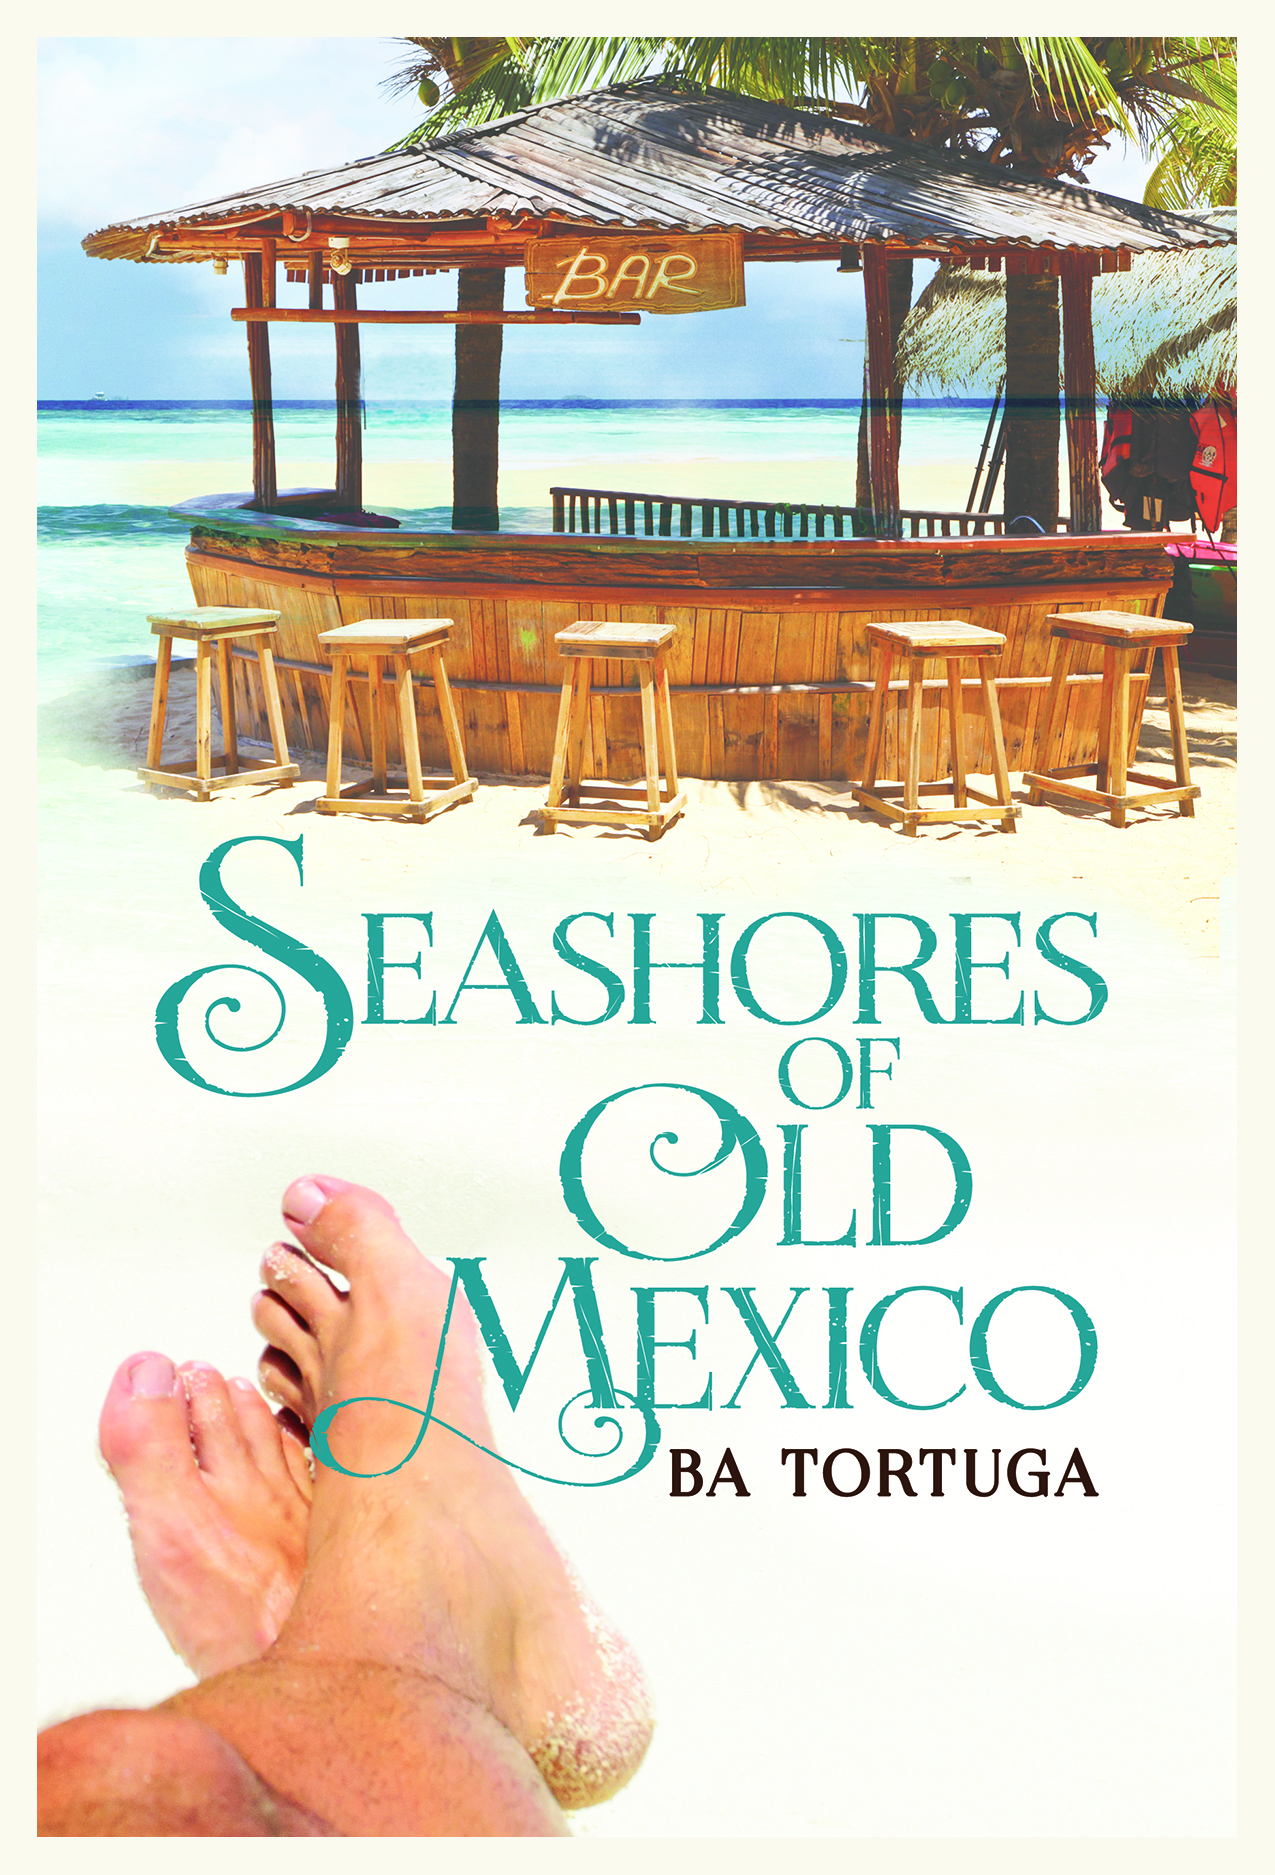 Seashores of Old Mexico by BA Tortuga